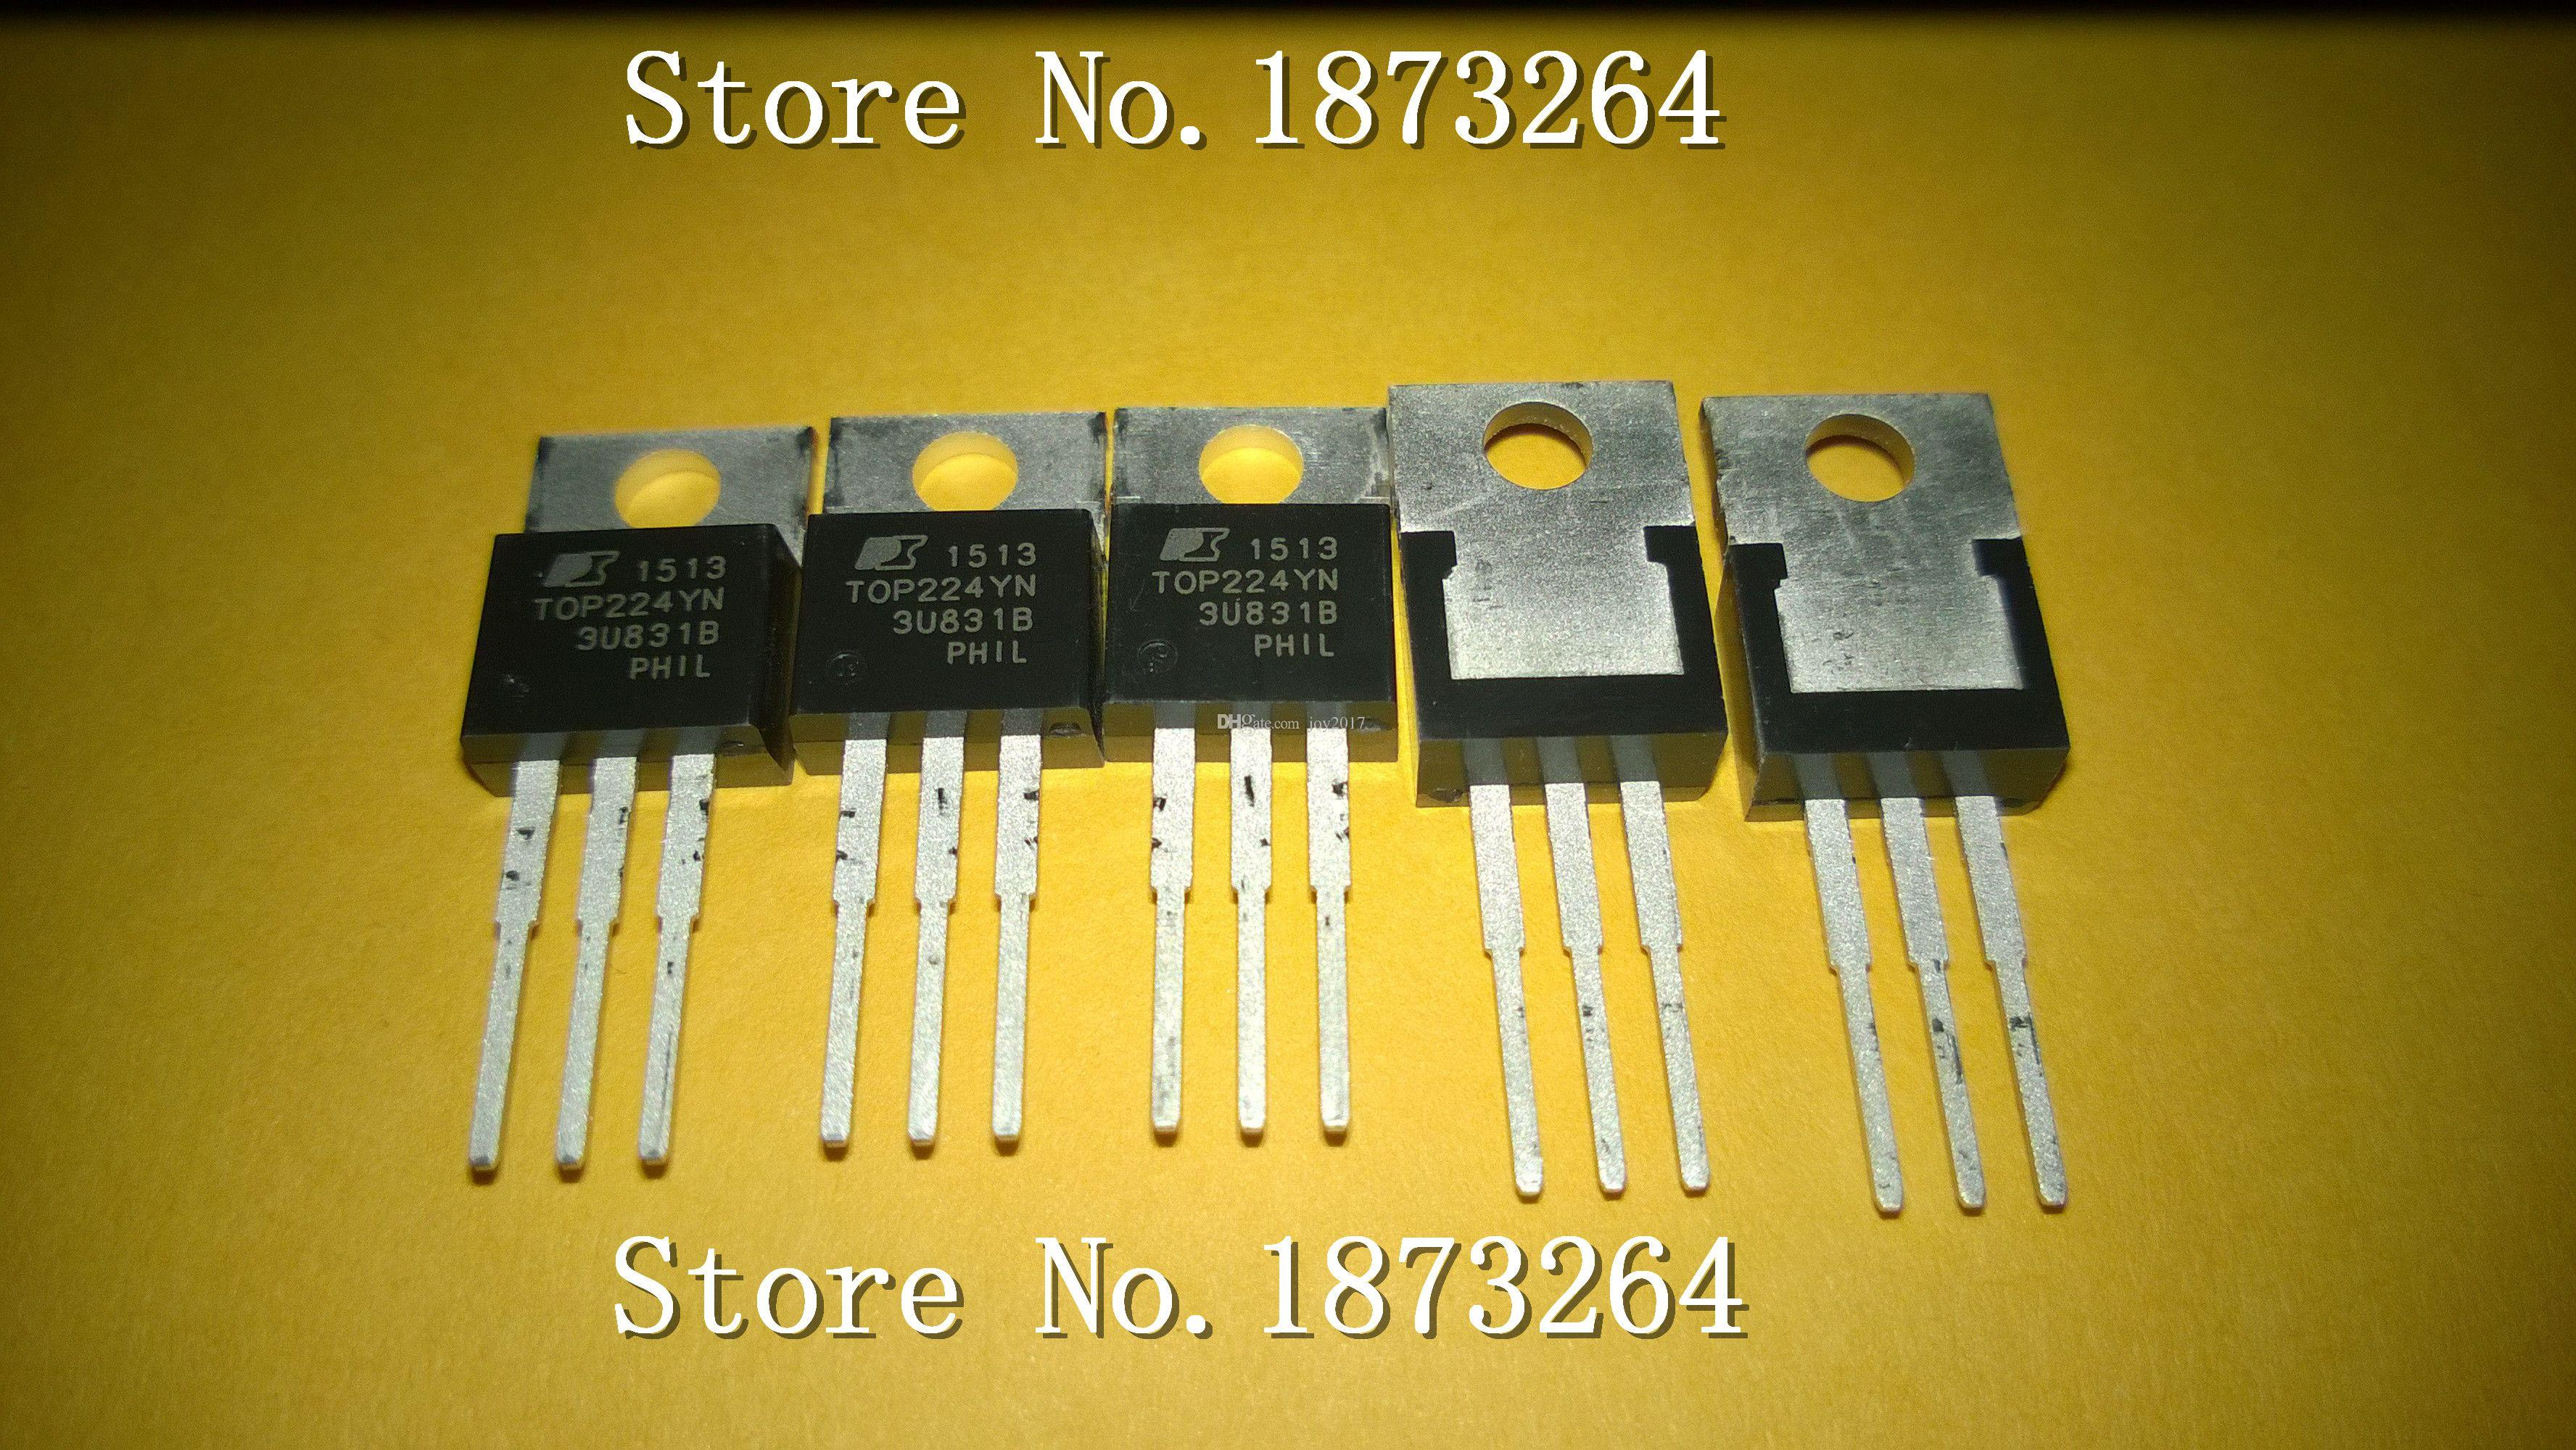 Top224yn Top224 To 220 In Stock Original New Top224y Fr207 10 Pcs Online With 1258 Piece On Joy2017s Store